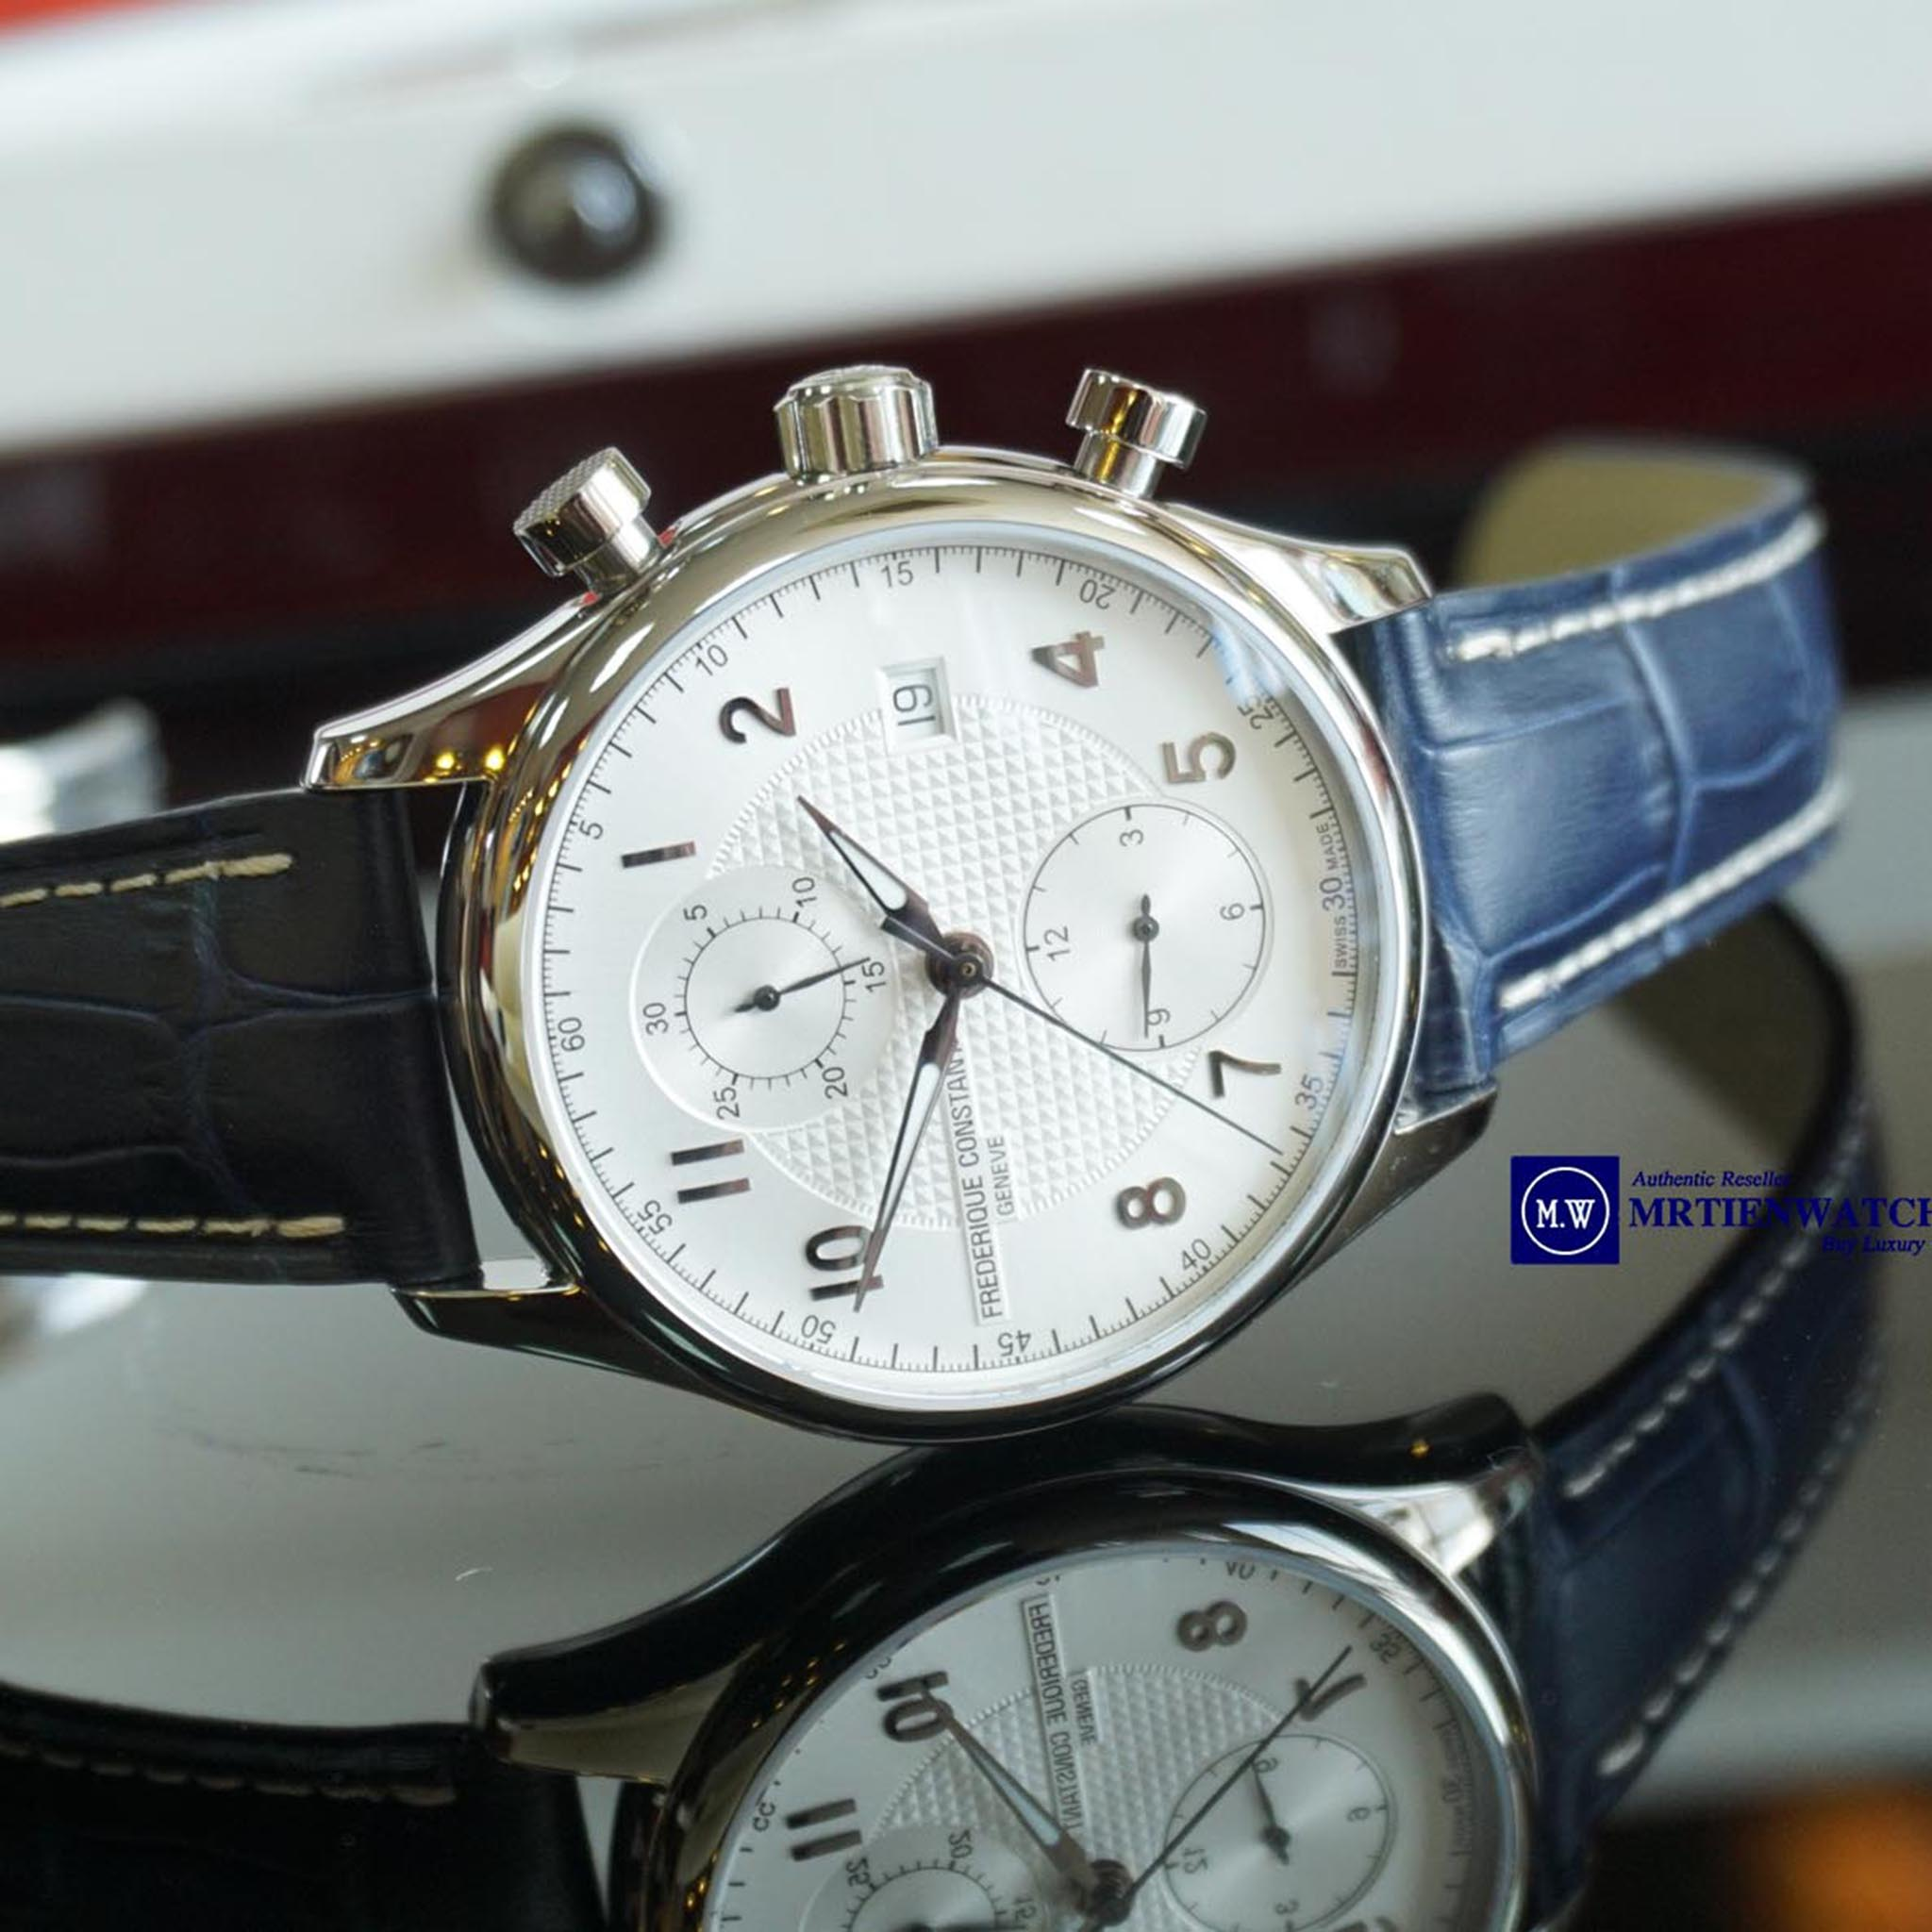 FREDERIQUE CONSTANT RUNABOUT CHRONOGRAPH AUTOMATIC LIMITED LEATHER STRAPS FC-393RM5B6 - Thép không rỉ